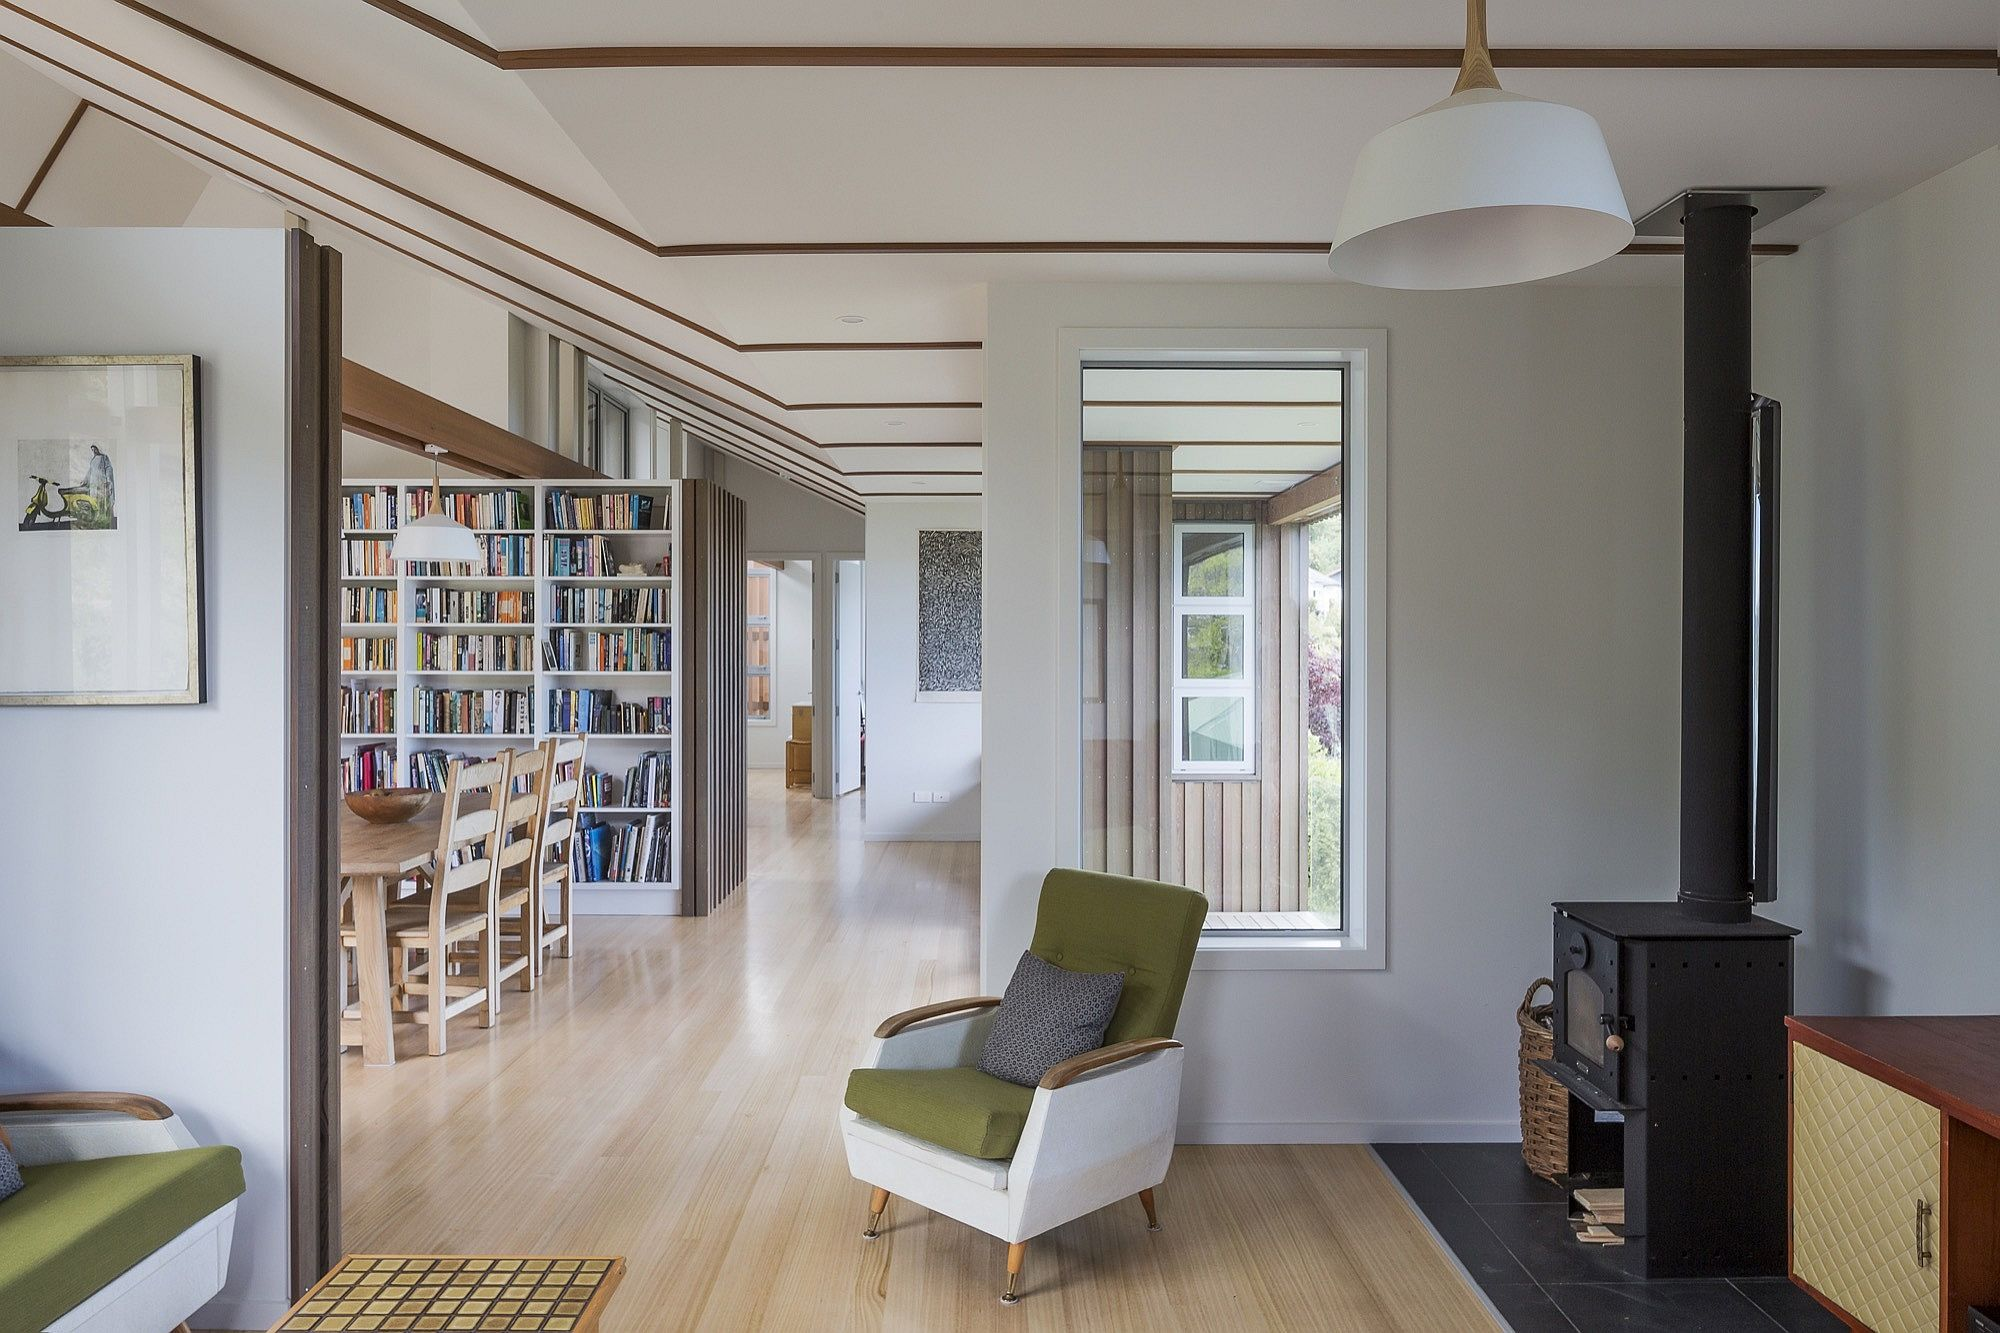 Elegant and neutral interior of the modern home in Christchurch with large bookshelf